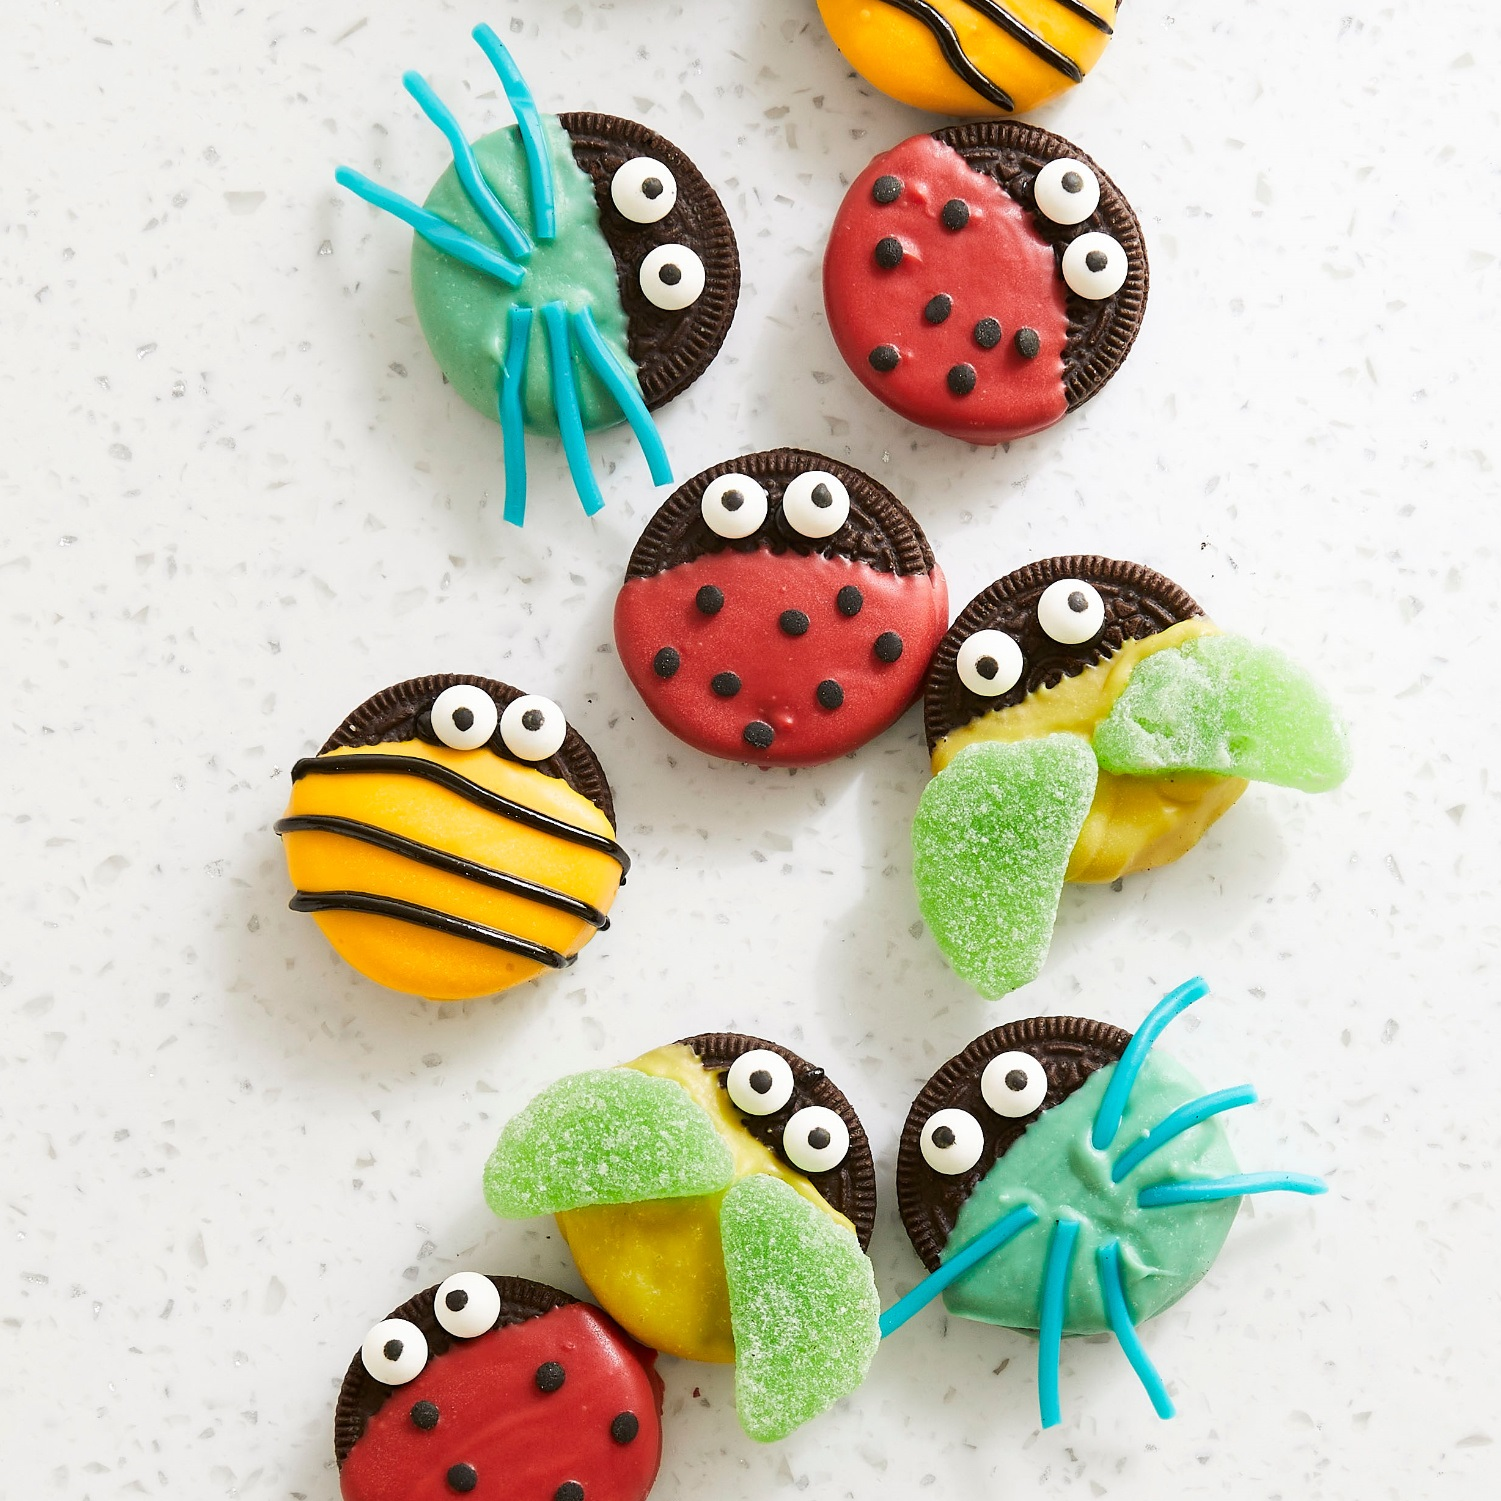 cookies decorated as cute bugs